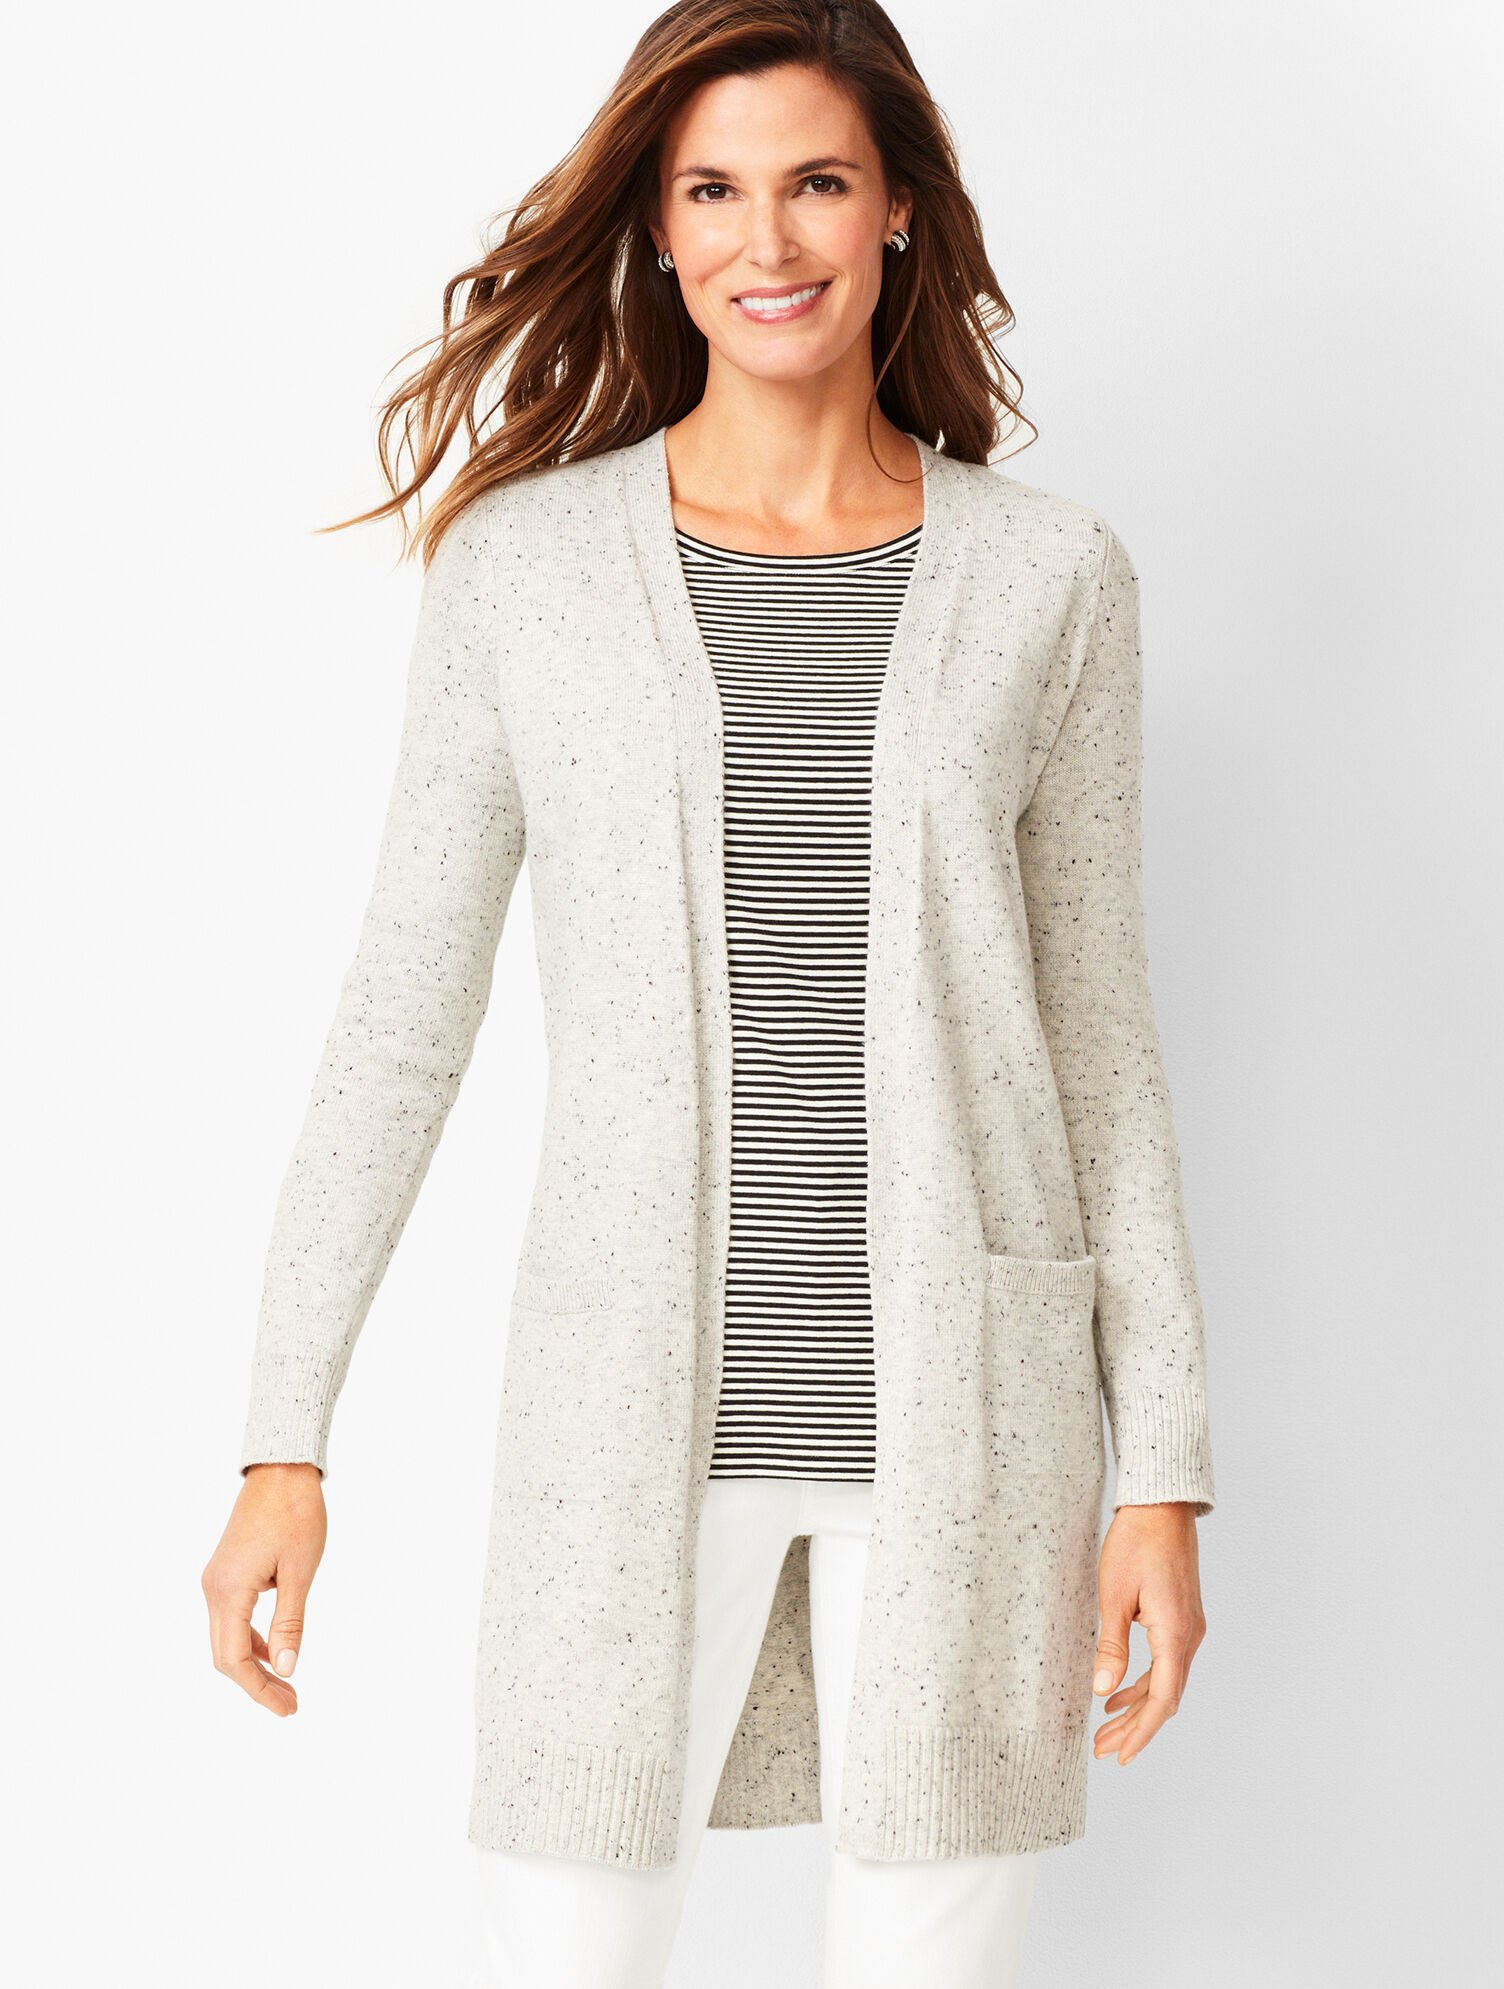 Donegal Cotton Blend Cardigan